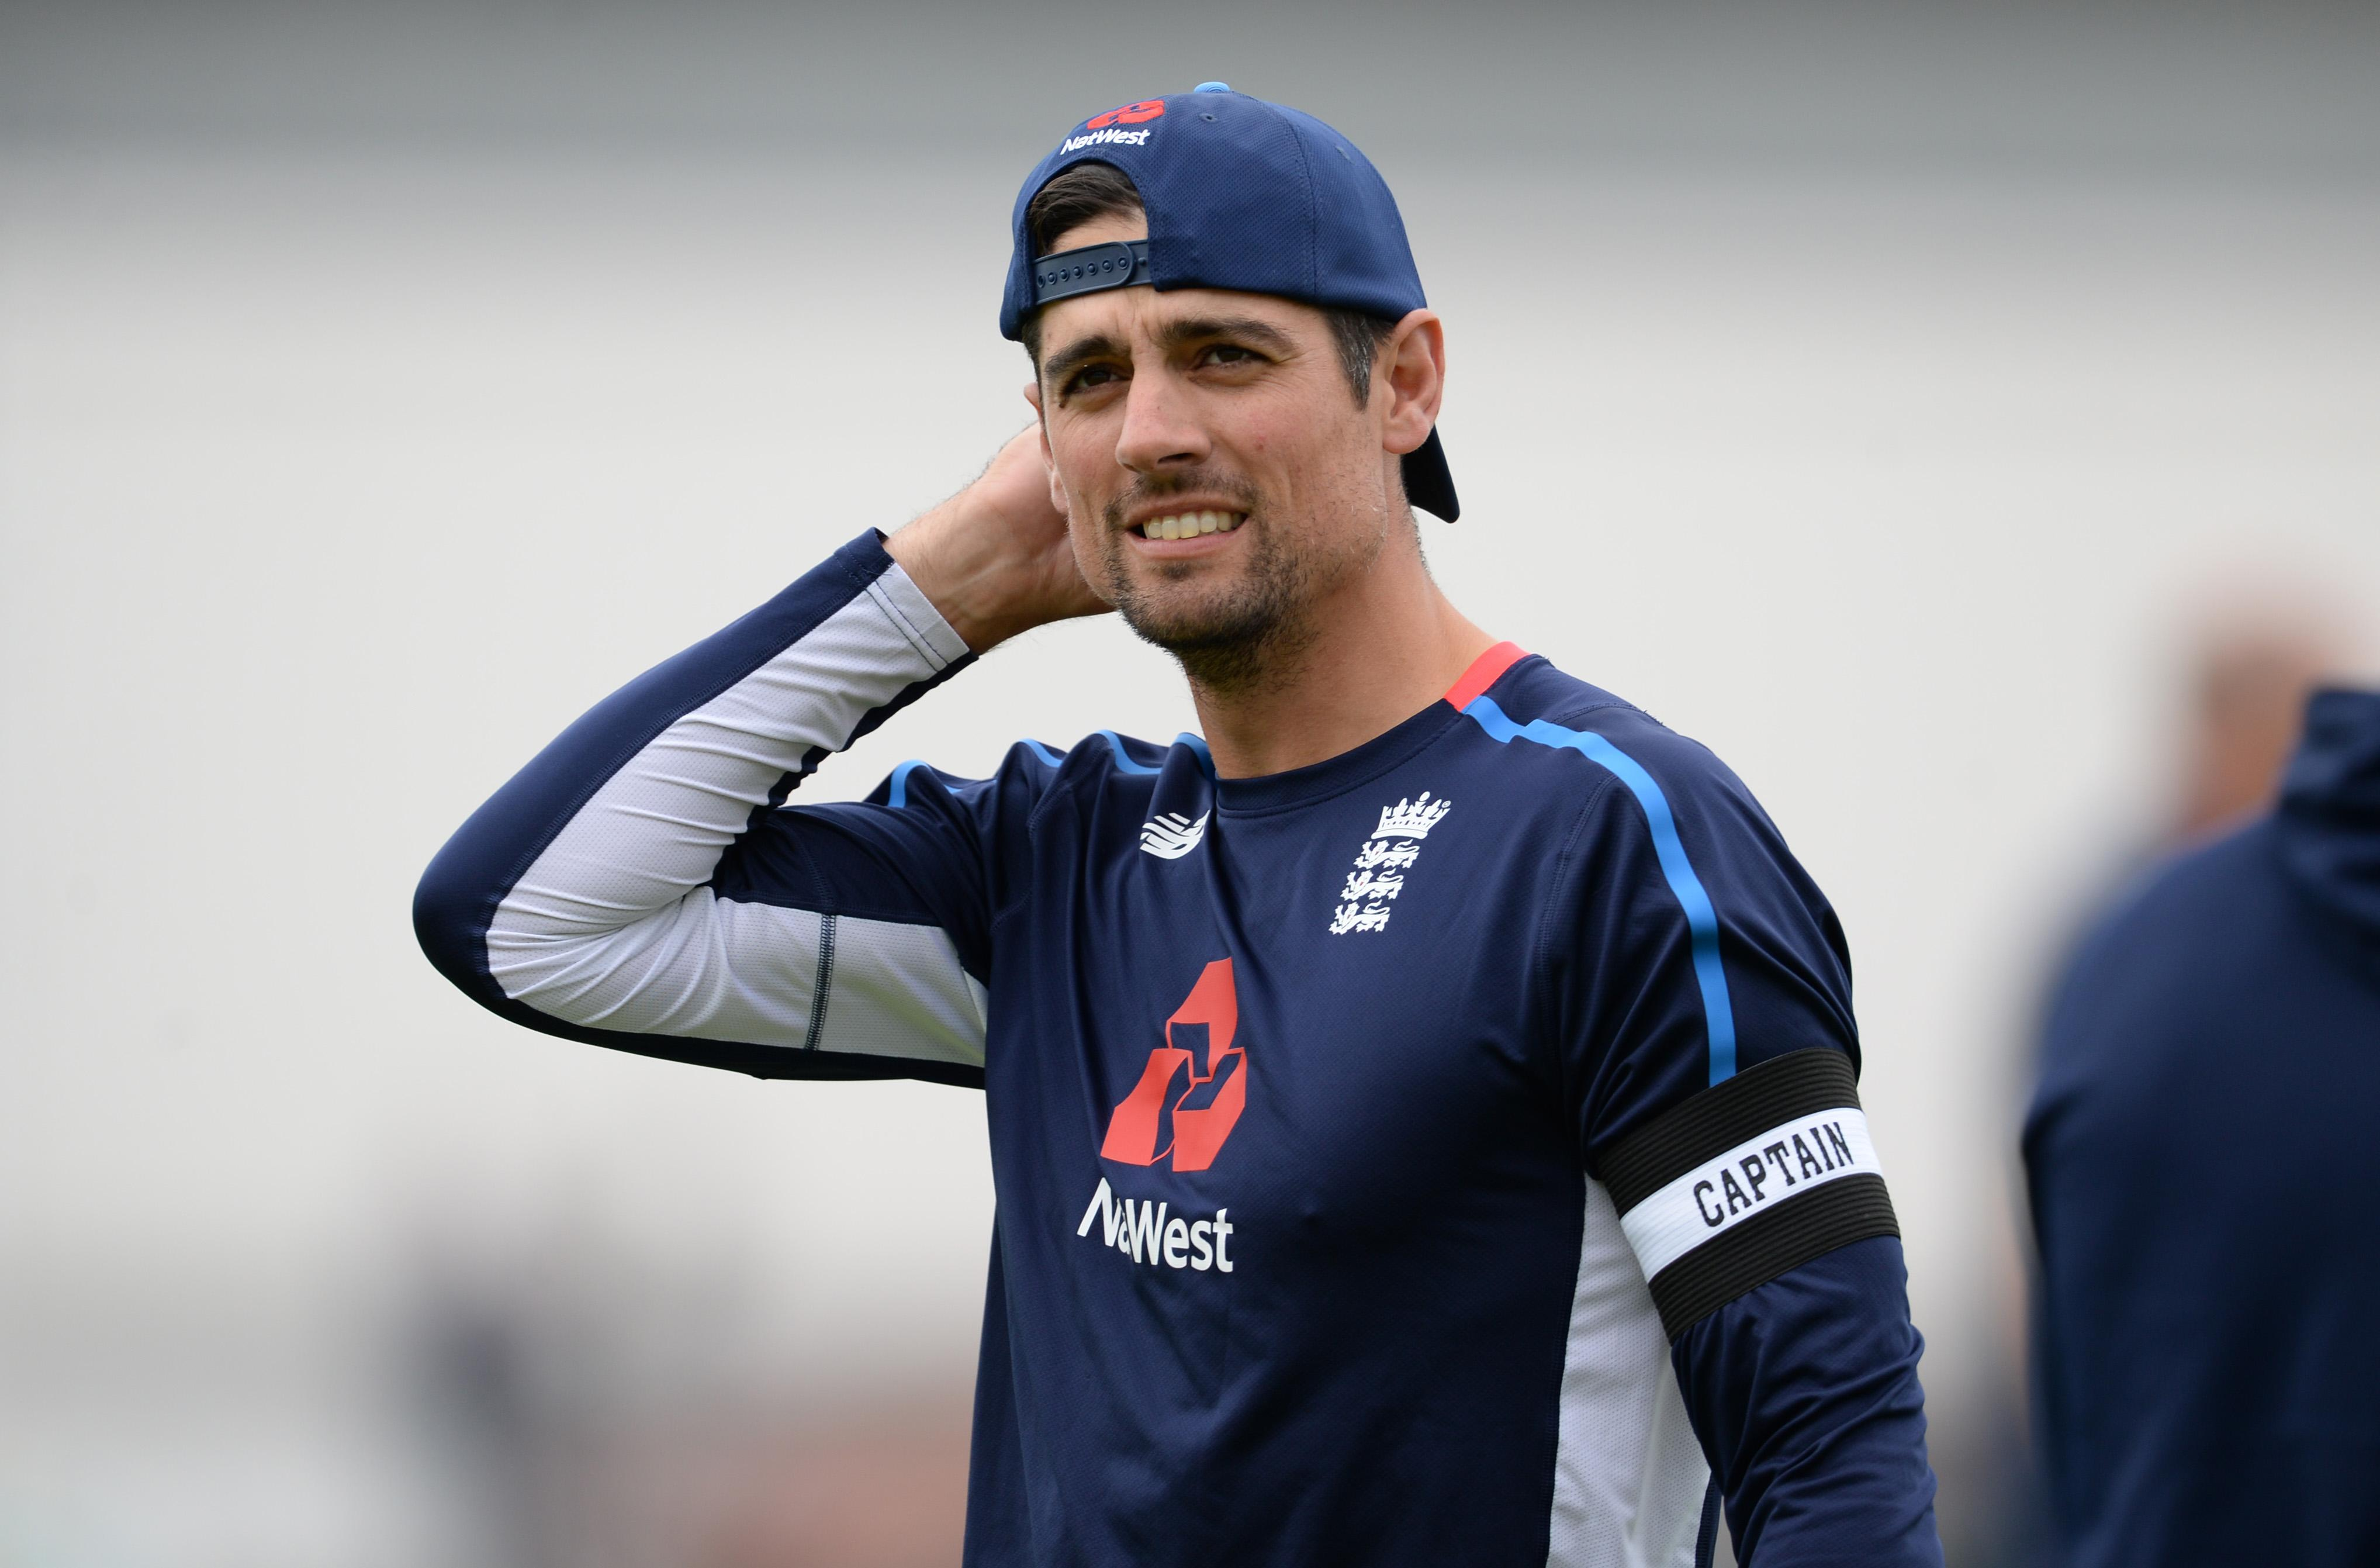 Alastair Cook insists this will be his last match for England